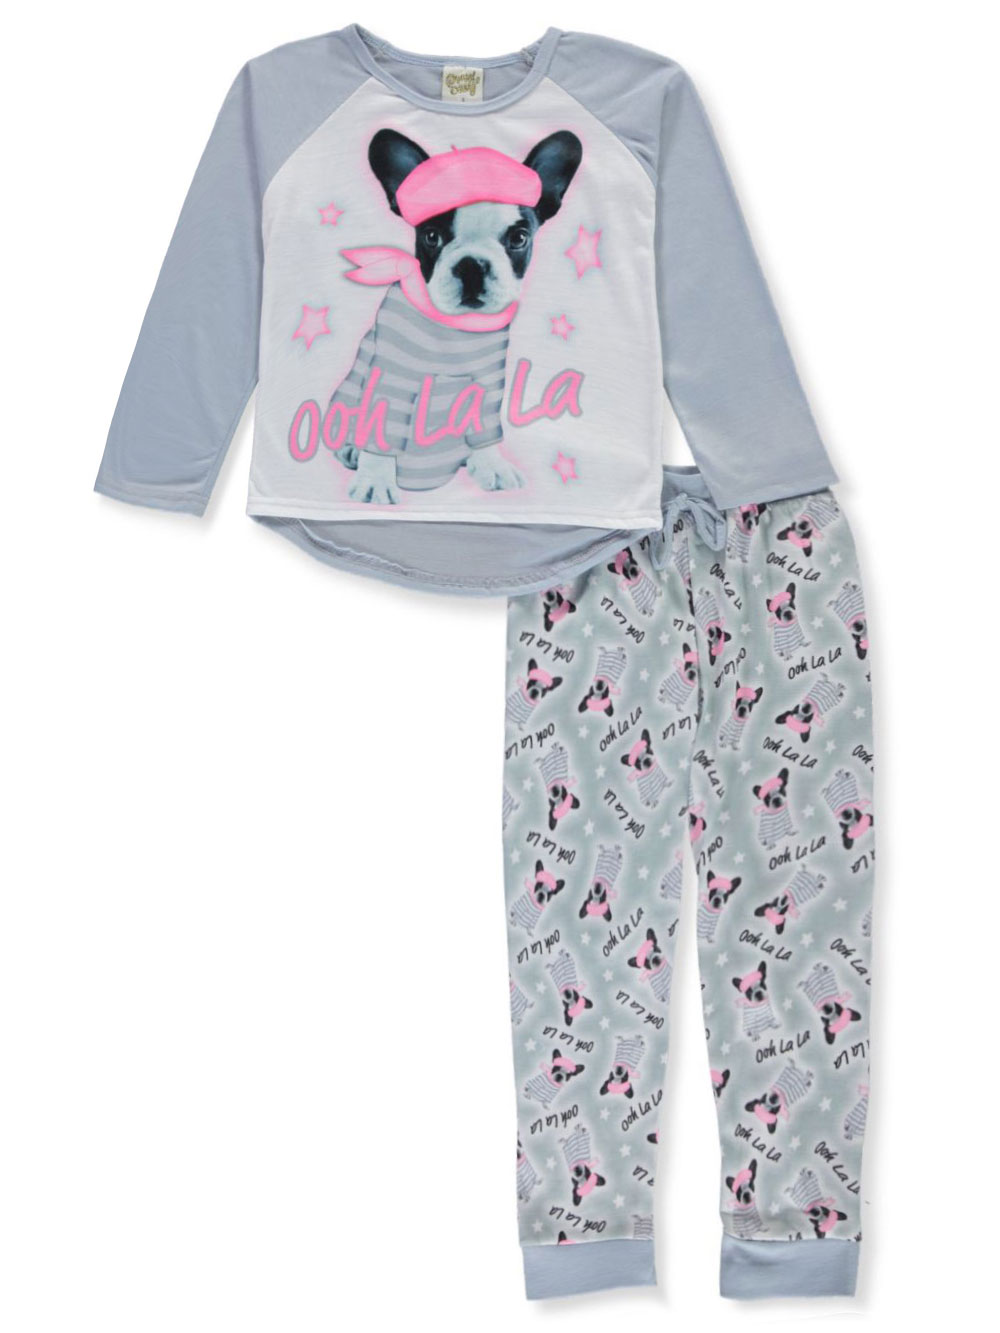 2 x Baby Girls Butterfly Panda Long Pyjamas Ages 6-23m